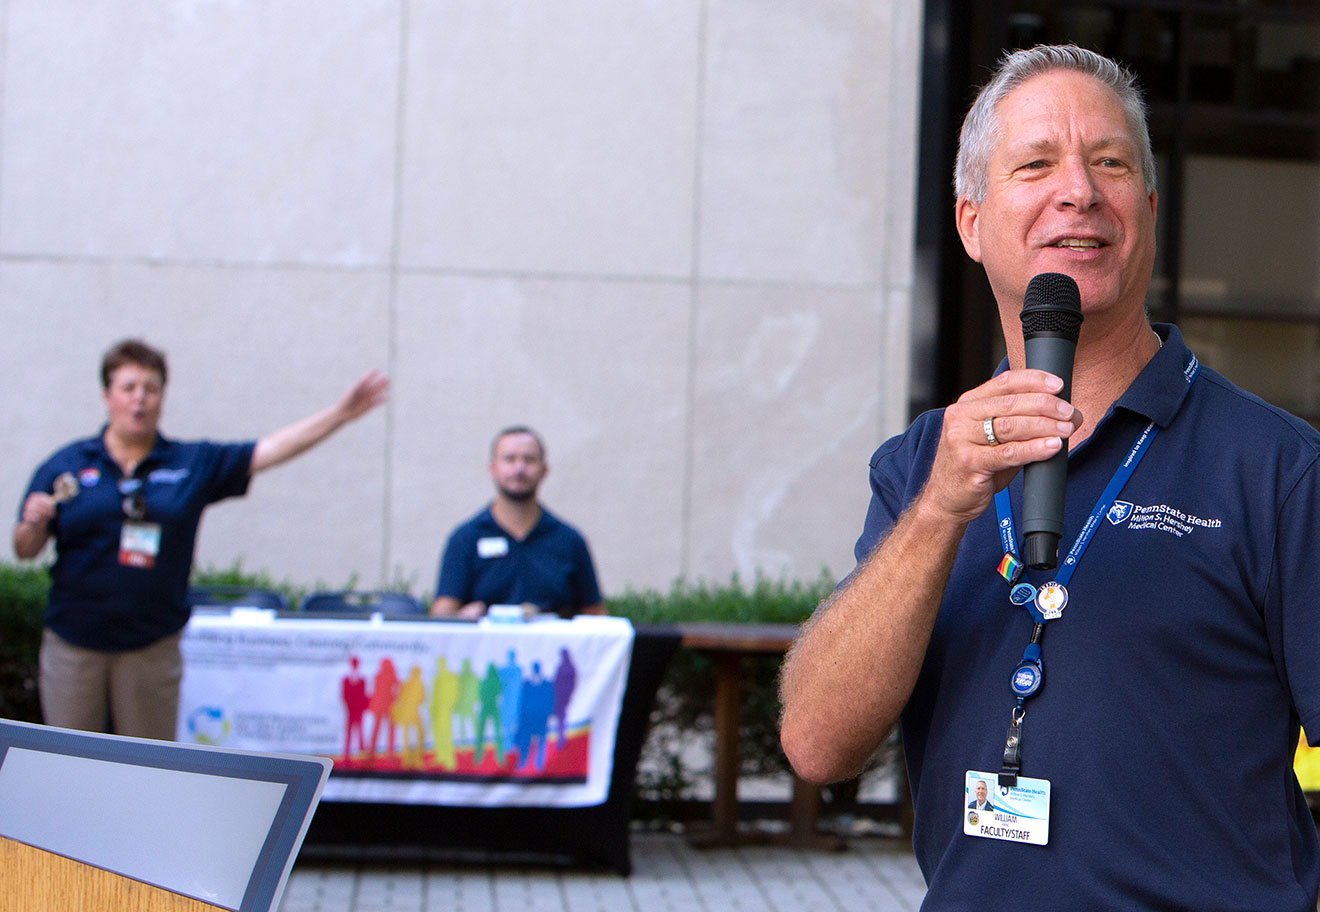 A man speaks into a microphone at an outdoor event. Two people are seen in the background at a table of LGBTQ+ information.